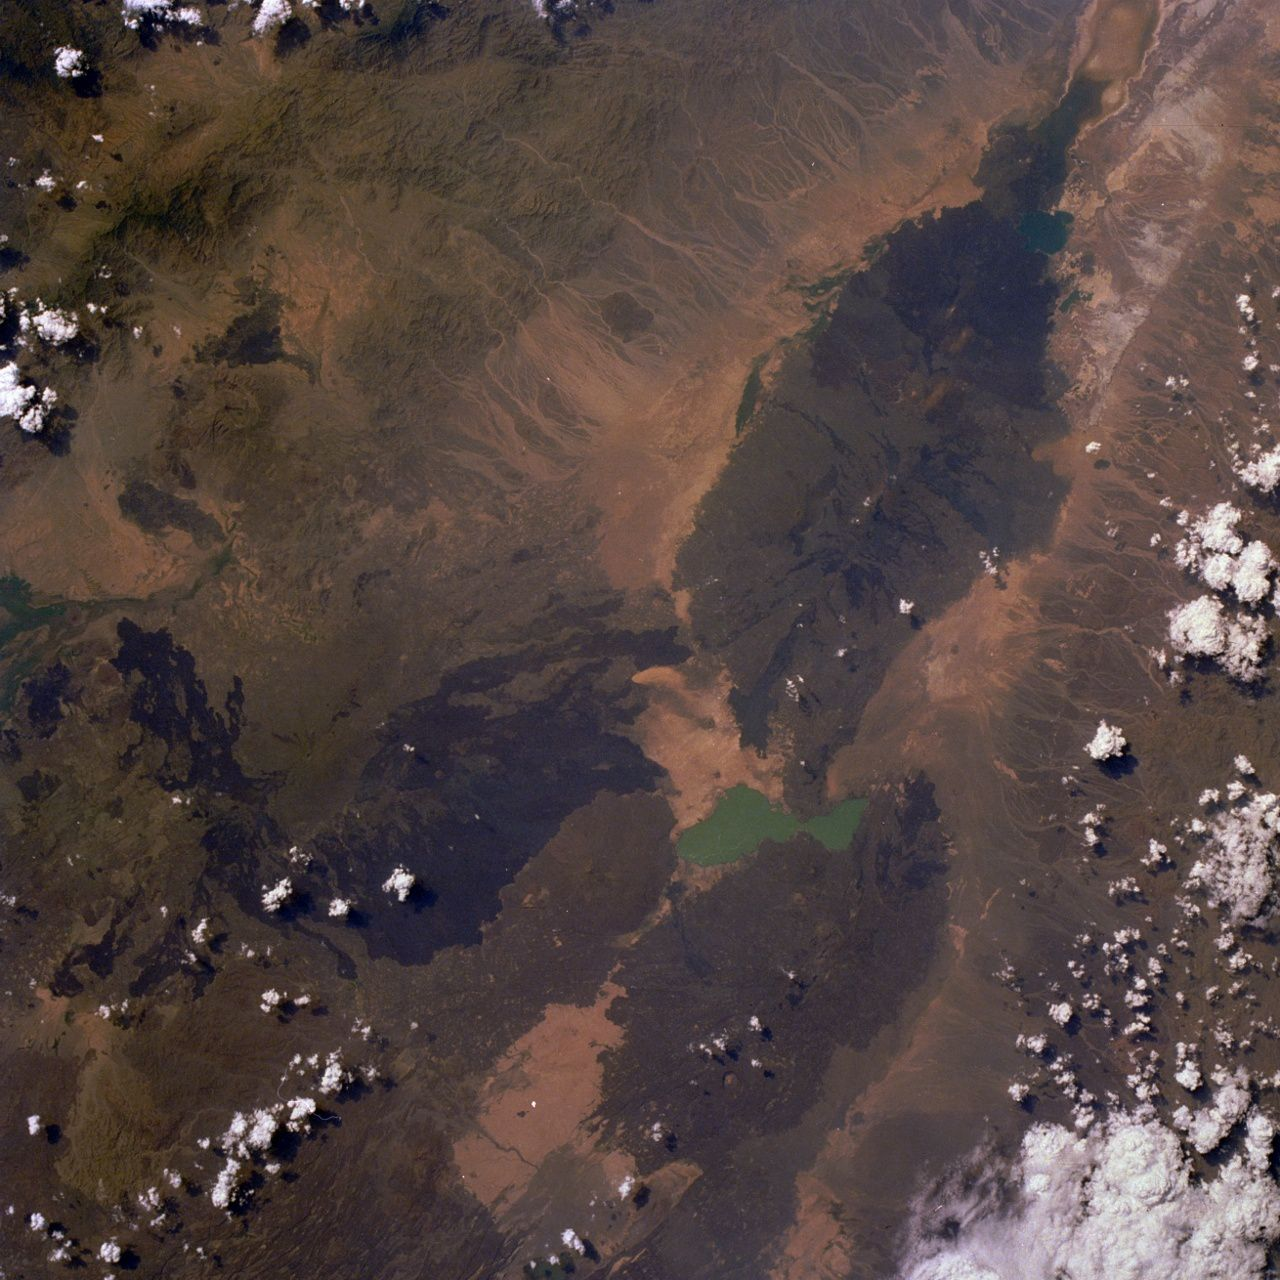 "The massive of Erta Ale - photo STS026-033-080 NASA / 30.09.1988 - 11:35 GMT (Erta Alle, a shield volcano located within the Rift Valley of northern Ethiopia, is visible in this near-vertical photograph taken north of turquoise Afrera Ye Ch'ew Lake. The volcano, called ""the smoking mountain"" by the local tribesmen, has an active lava lake (barely discernible in the photograph) Approximately 150 feet (46 meters) wide, qui has-been in a constant state of eruption since the late 1960s.)"